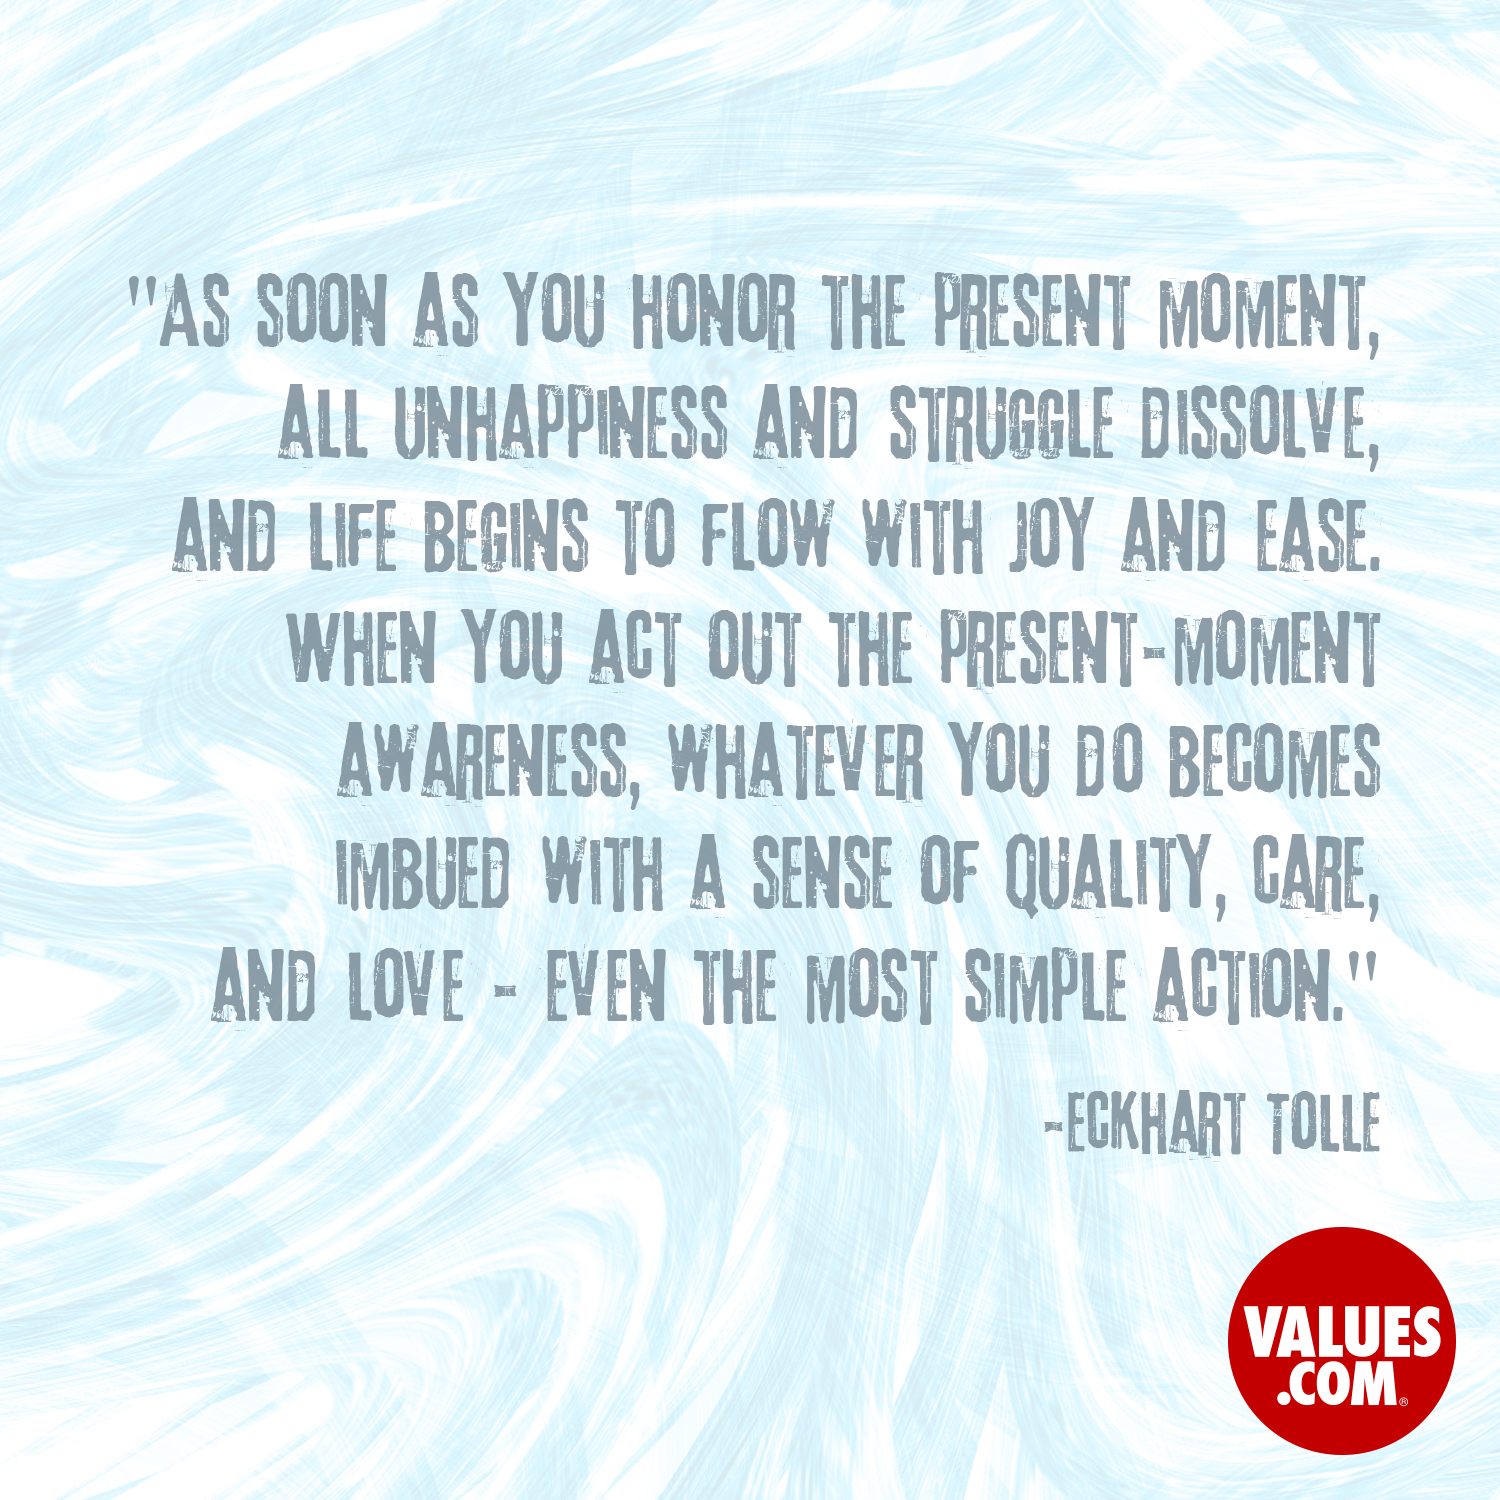 As soon as you honor the present moment, all unhappiness and struggle dissolve, and life begins to flow with joy and ease. When you act out the present-moment awareness, whatever you do becomes imbued with a sense of quality, care, and love - even the most simple action.  —Eckhart Tolle